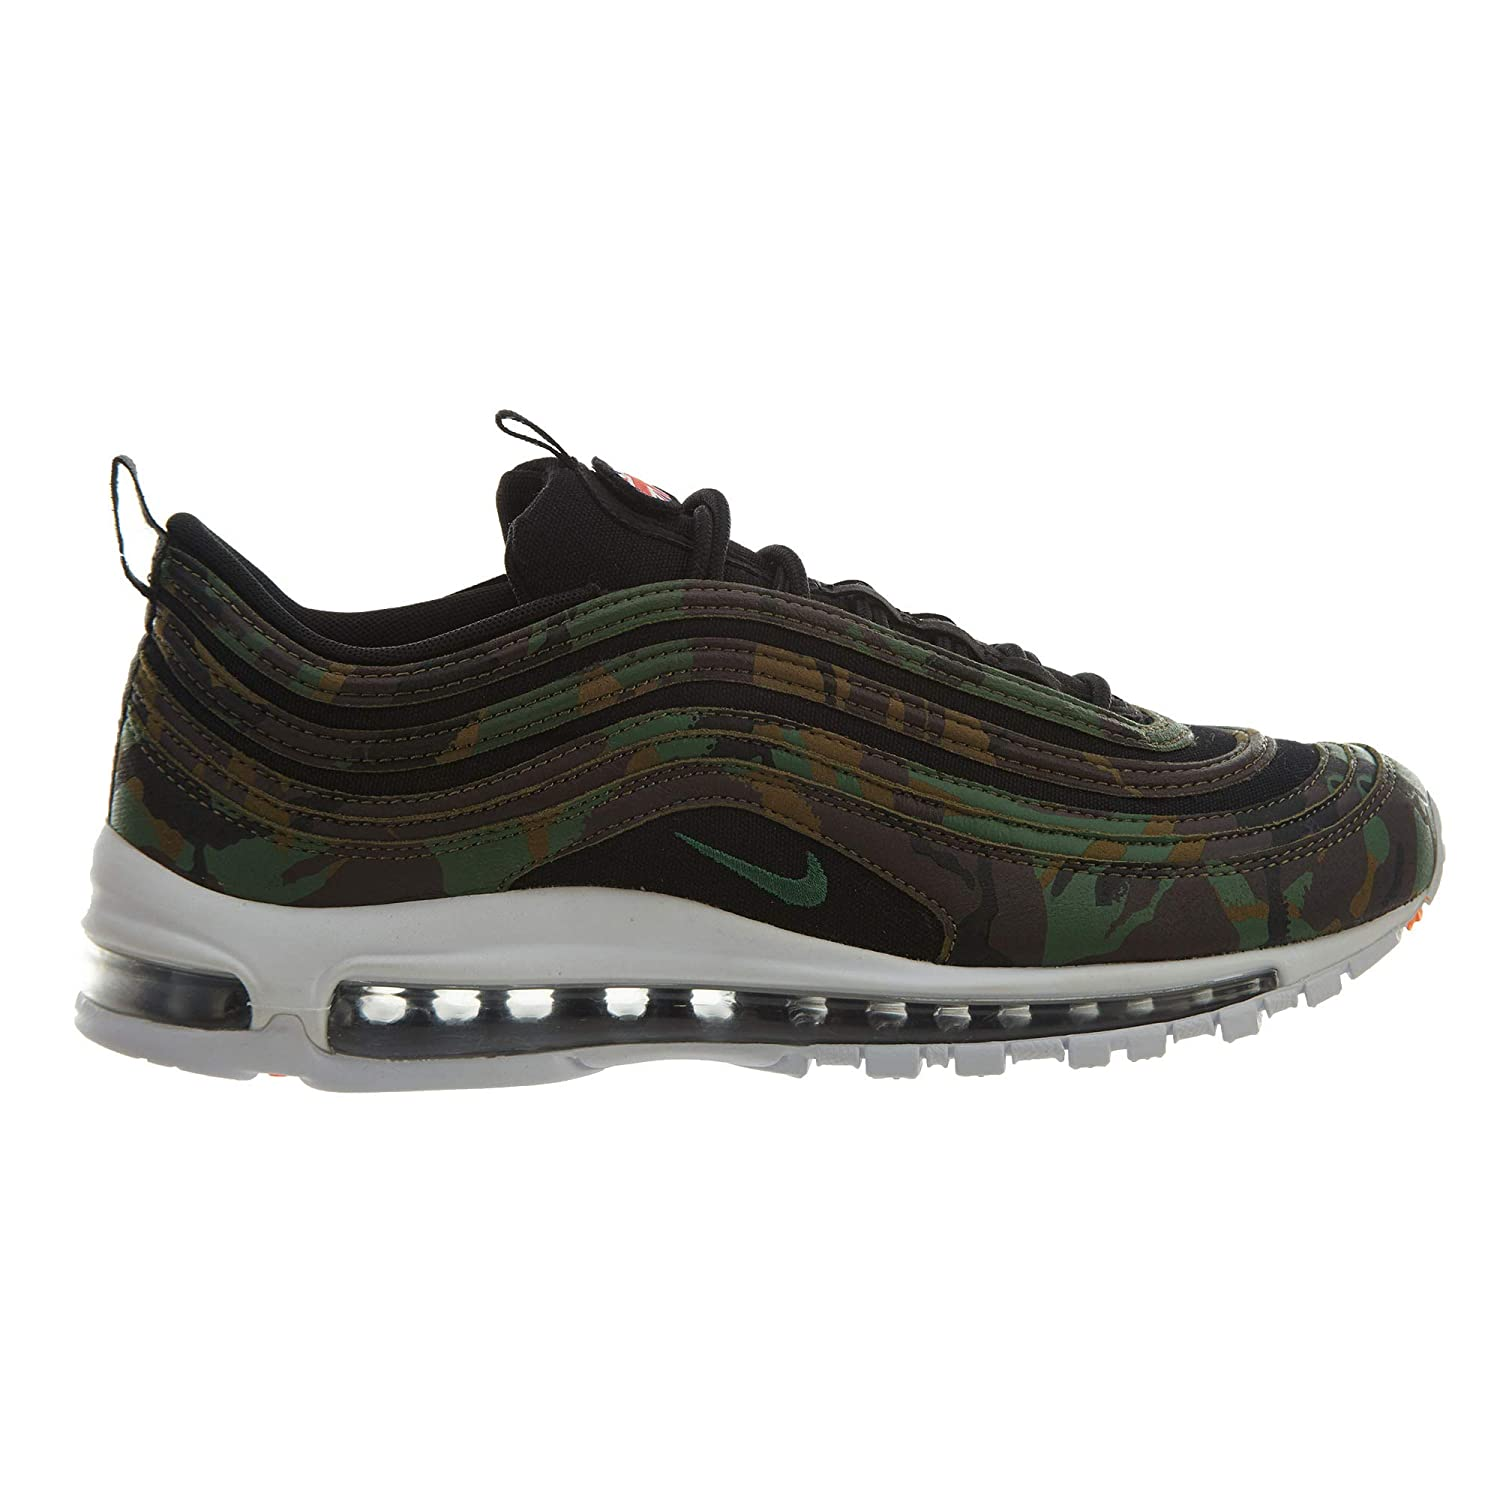 62acc6a389fa Nike Air Max 97 Premium QS Mens Running Trainers Aj2614 Sneakers Shoes   Amazon.co.uk  Shoes   Bags